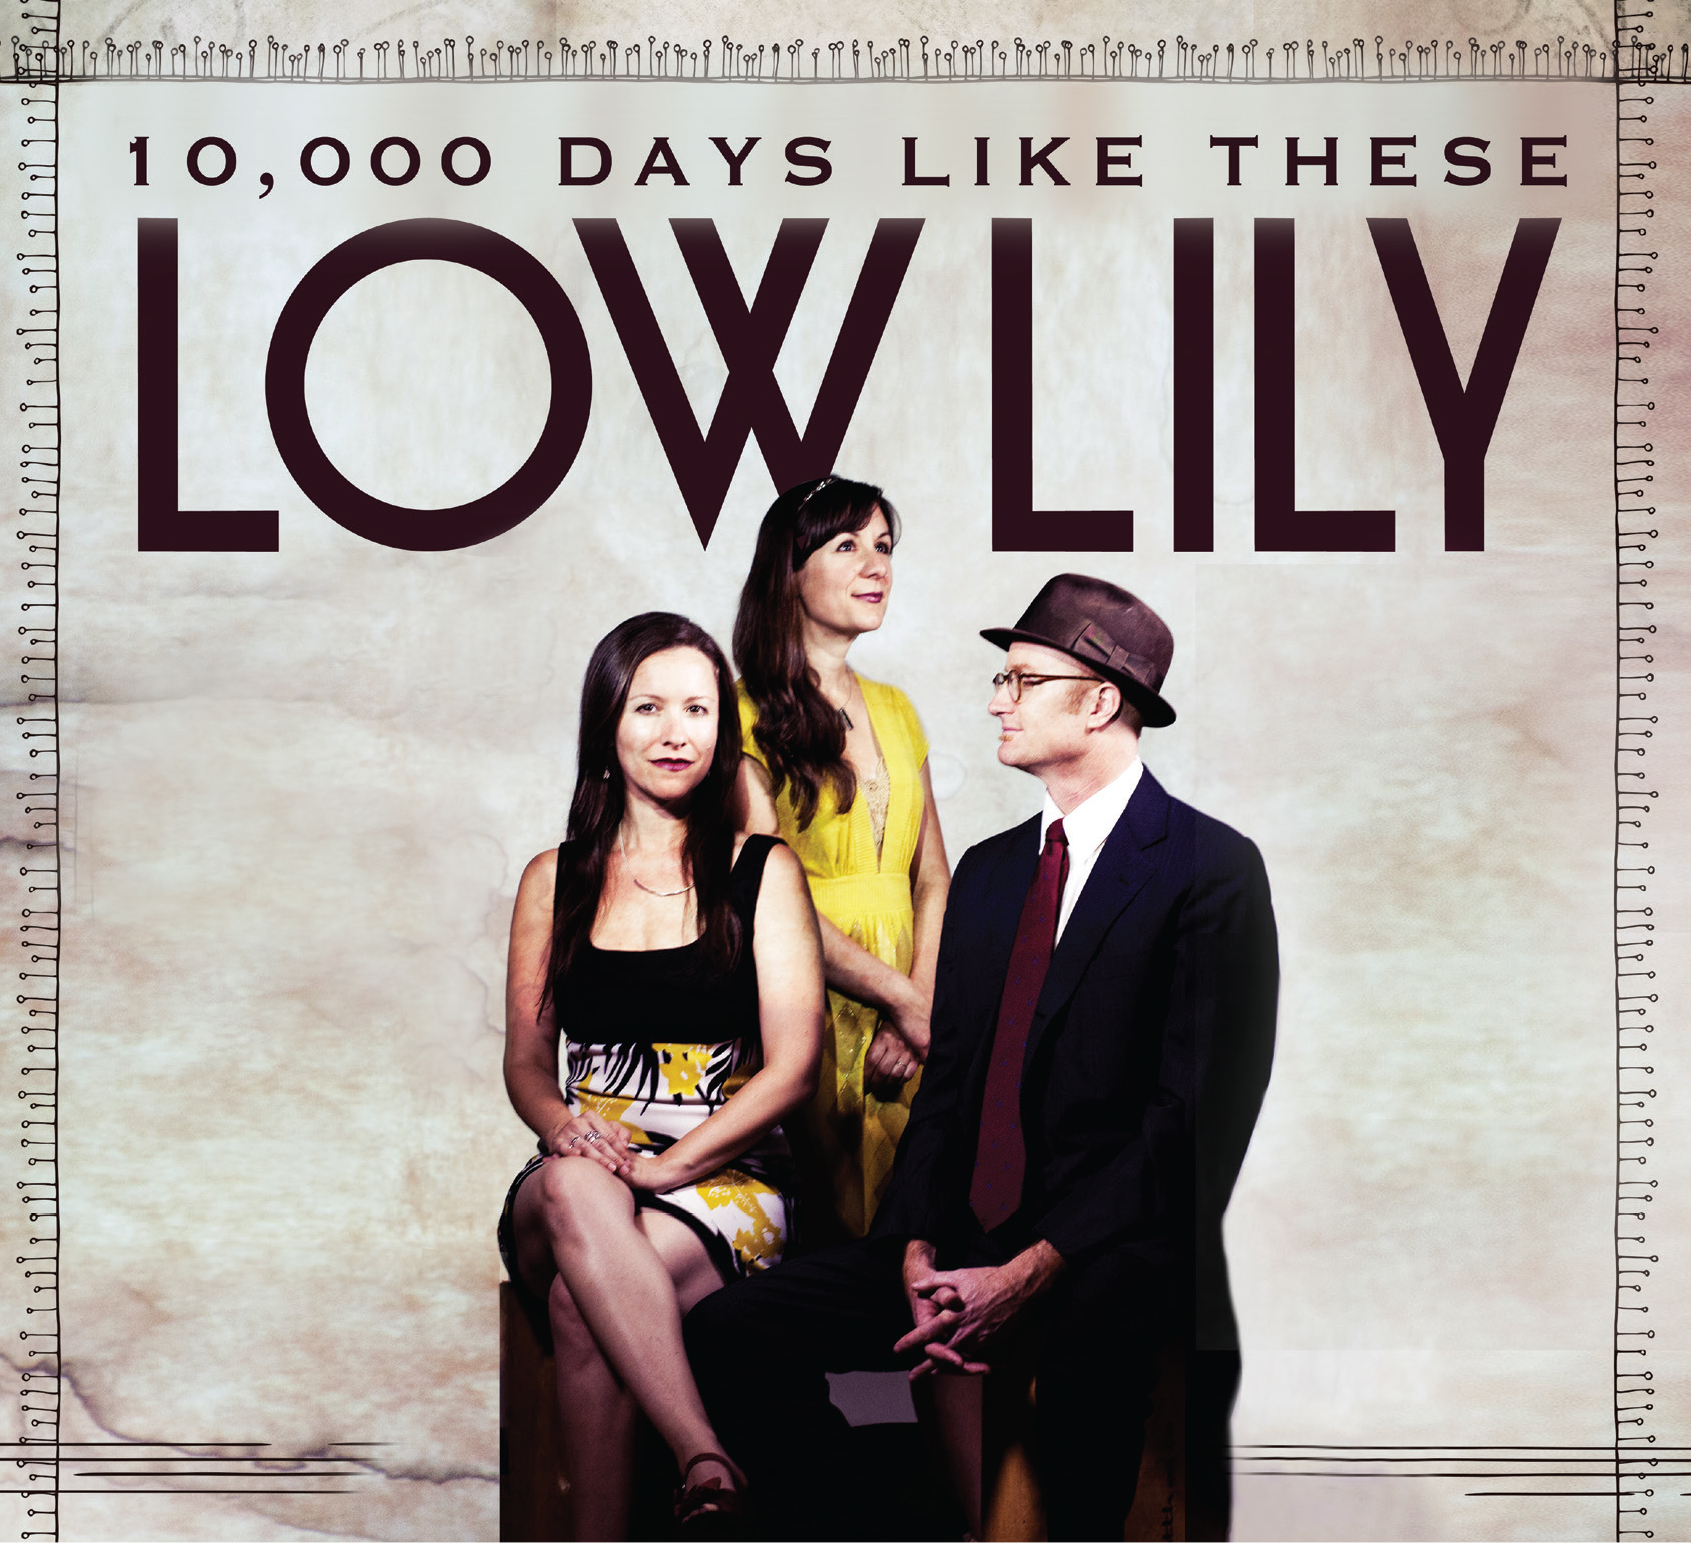 The album cover for 10,000 Days Like These